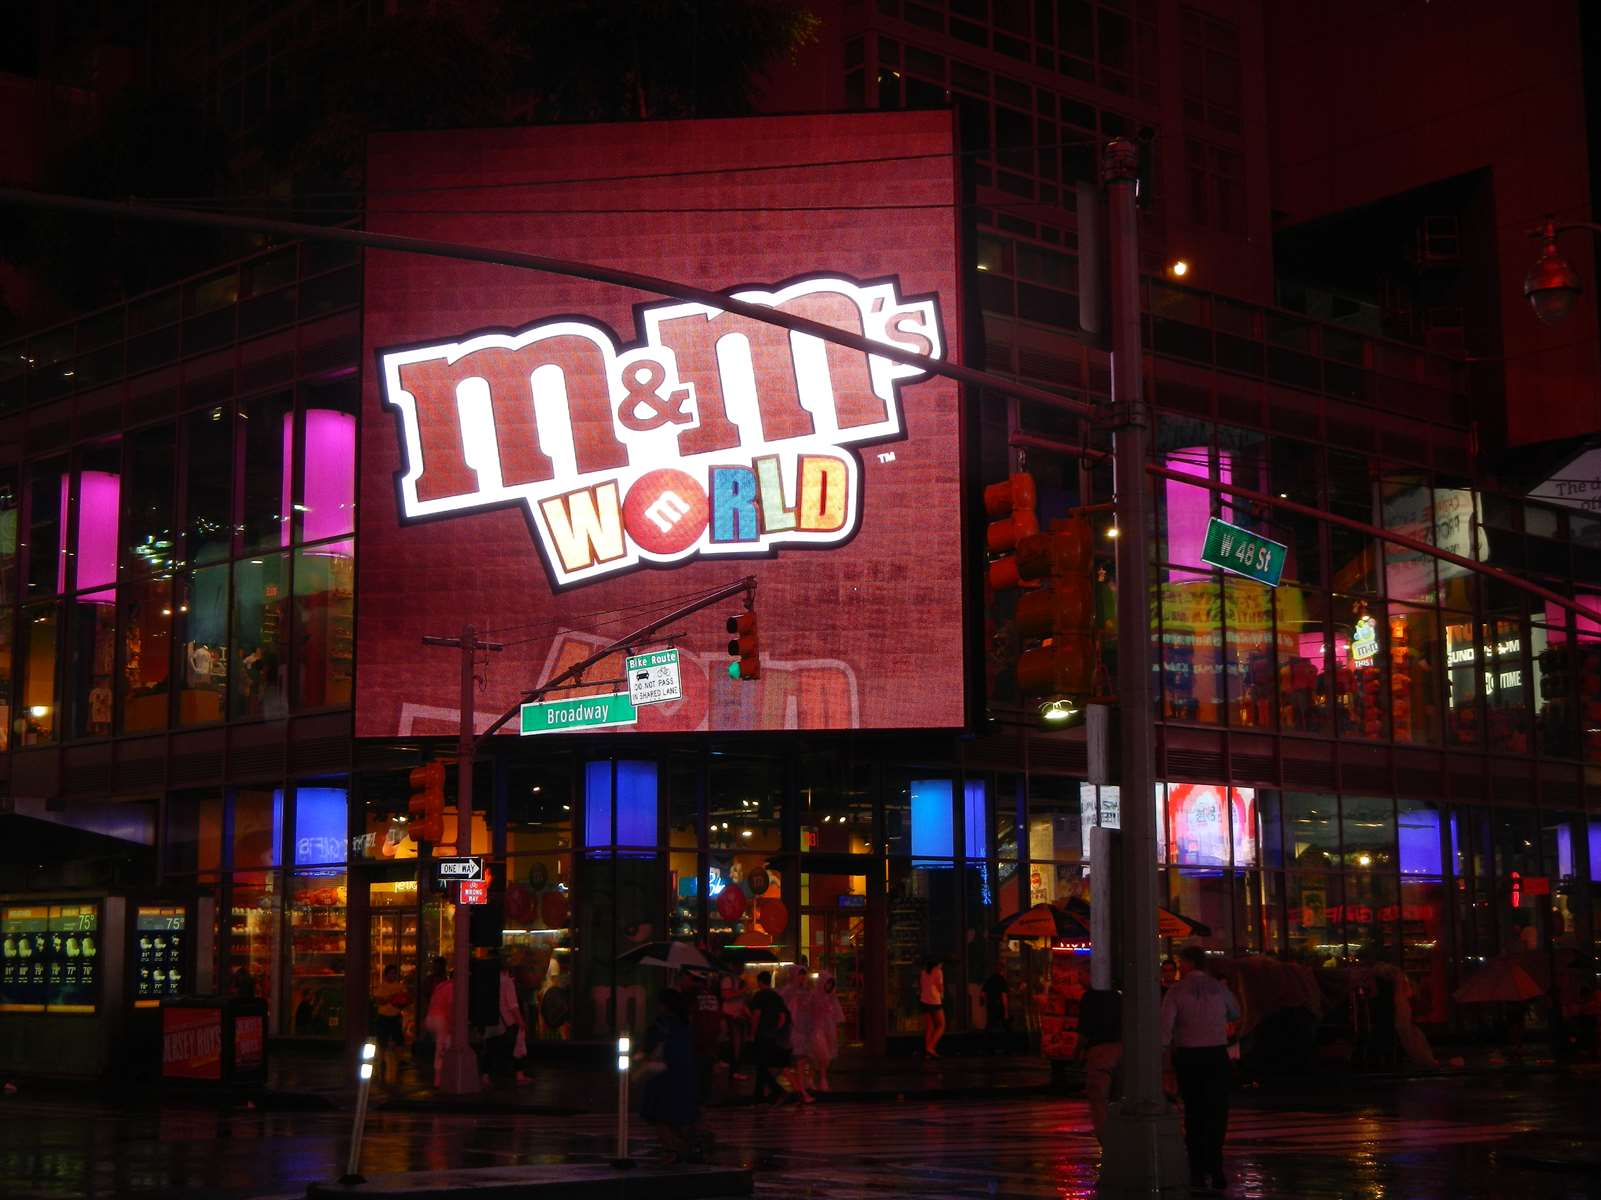 New York - Times Square - Boutique M&M's